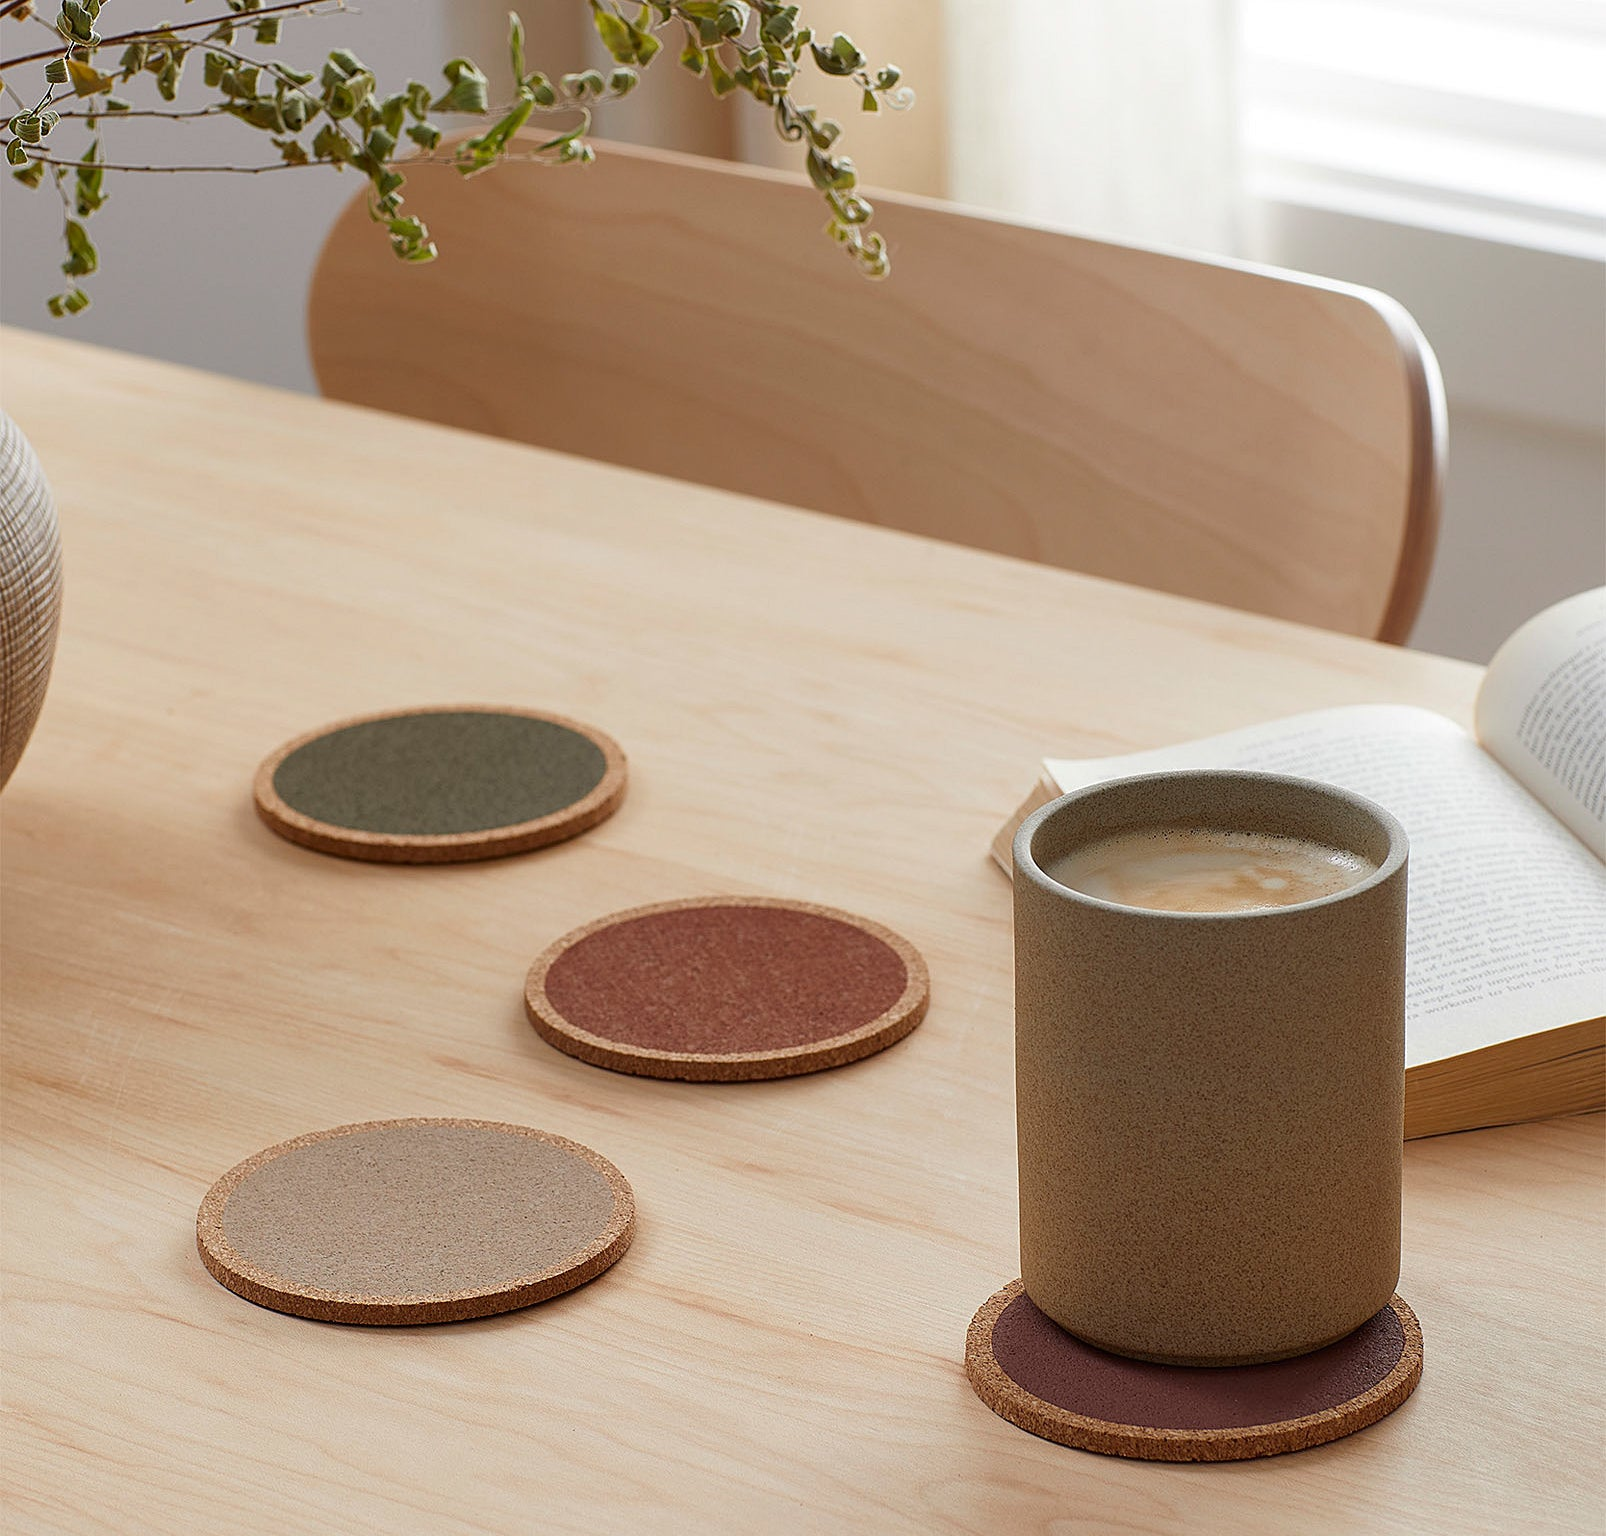 Four coasters on a table, one with a cute mug of coffee sitting on top